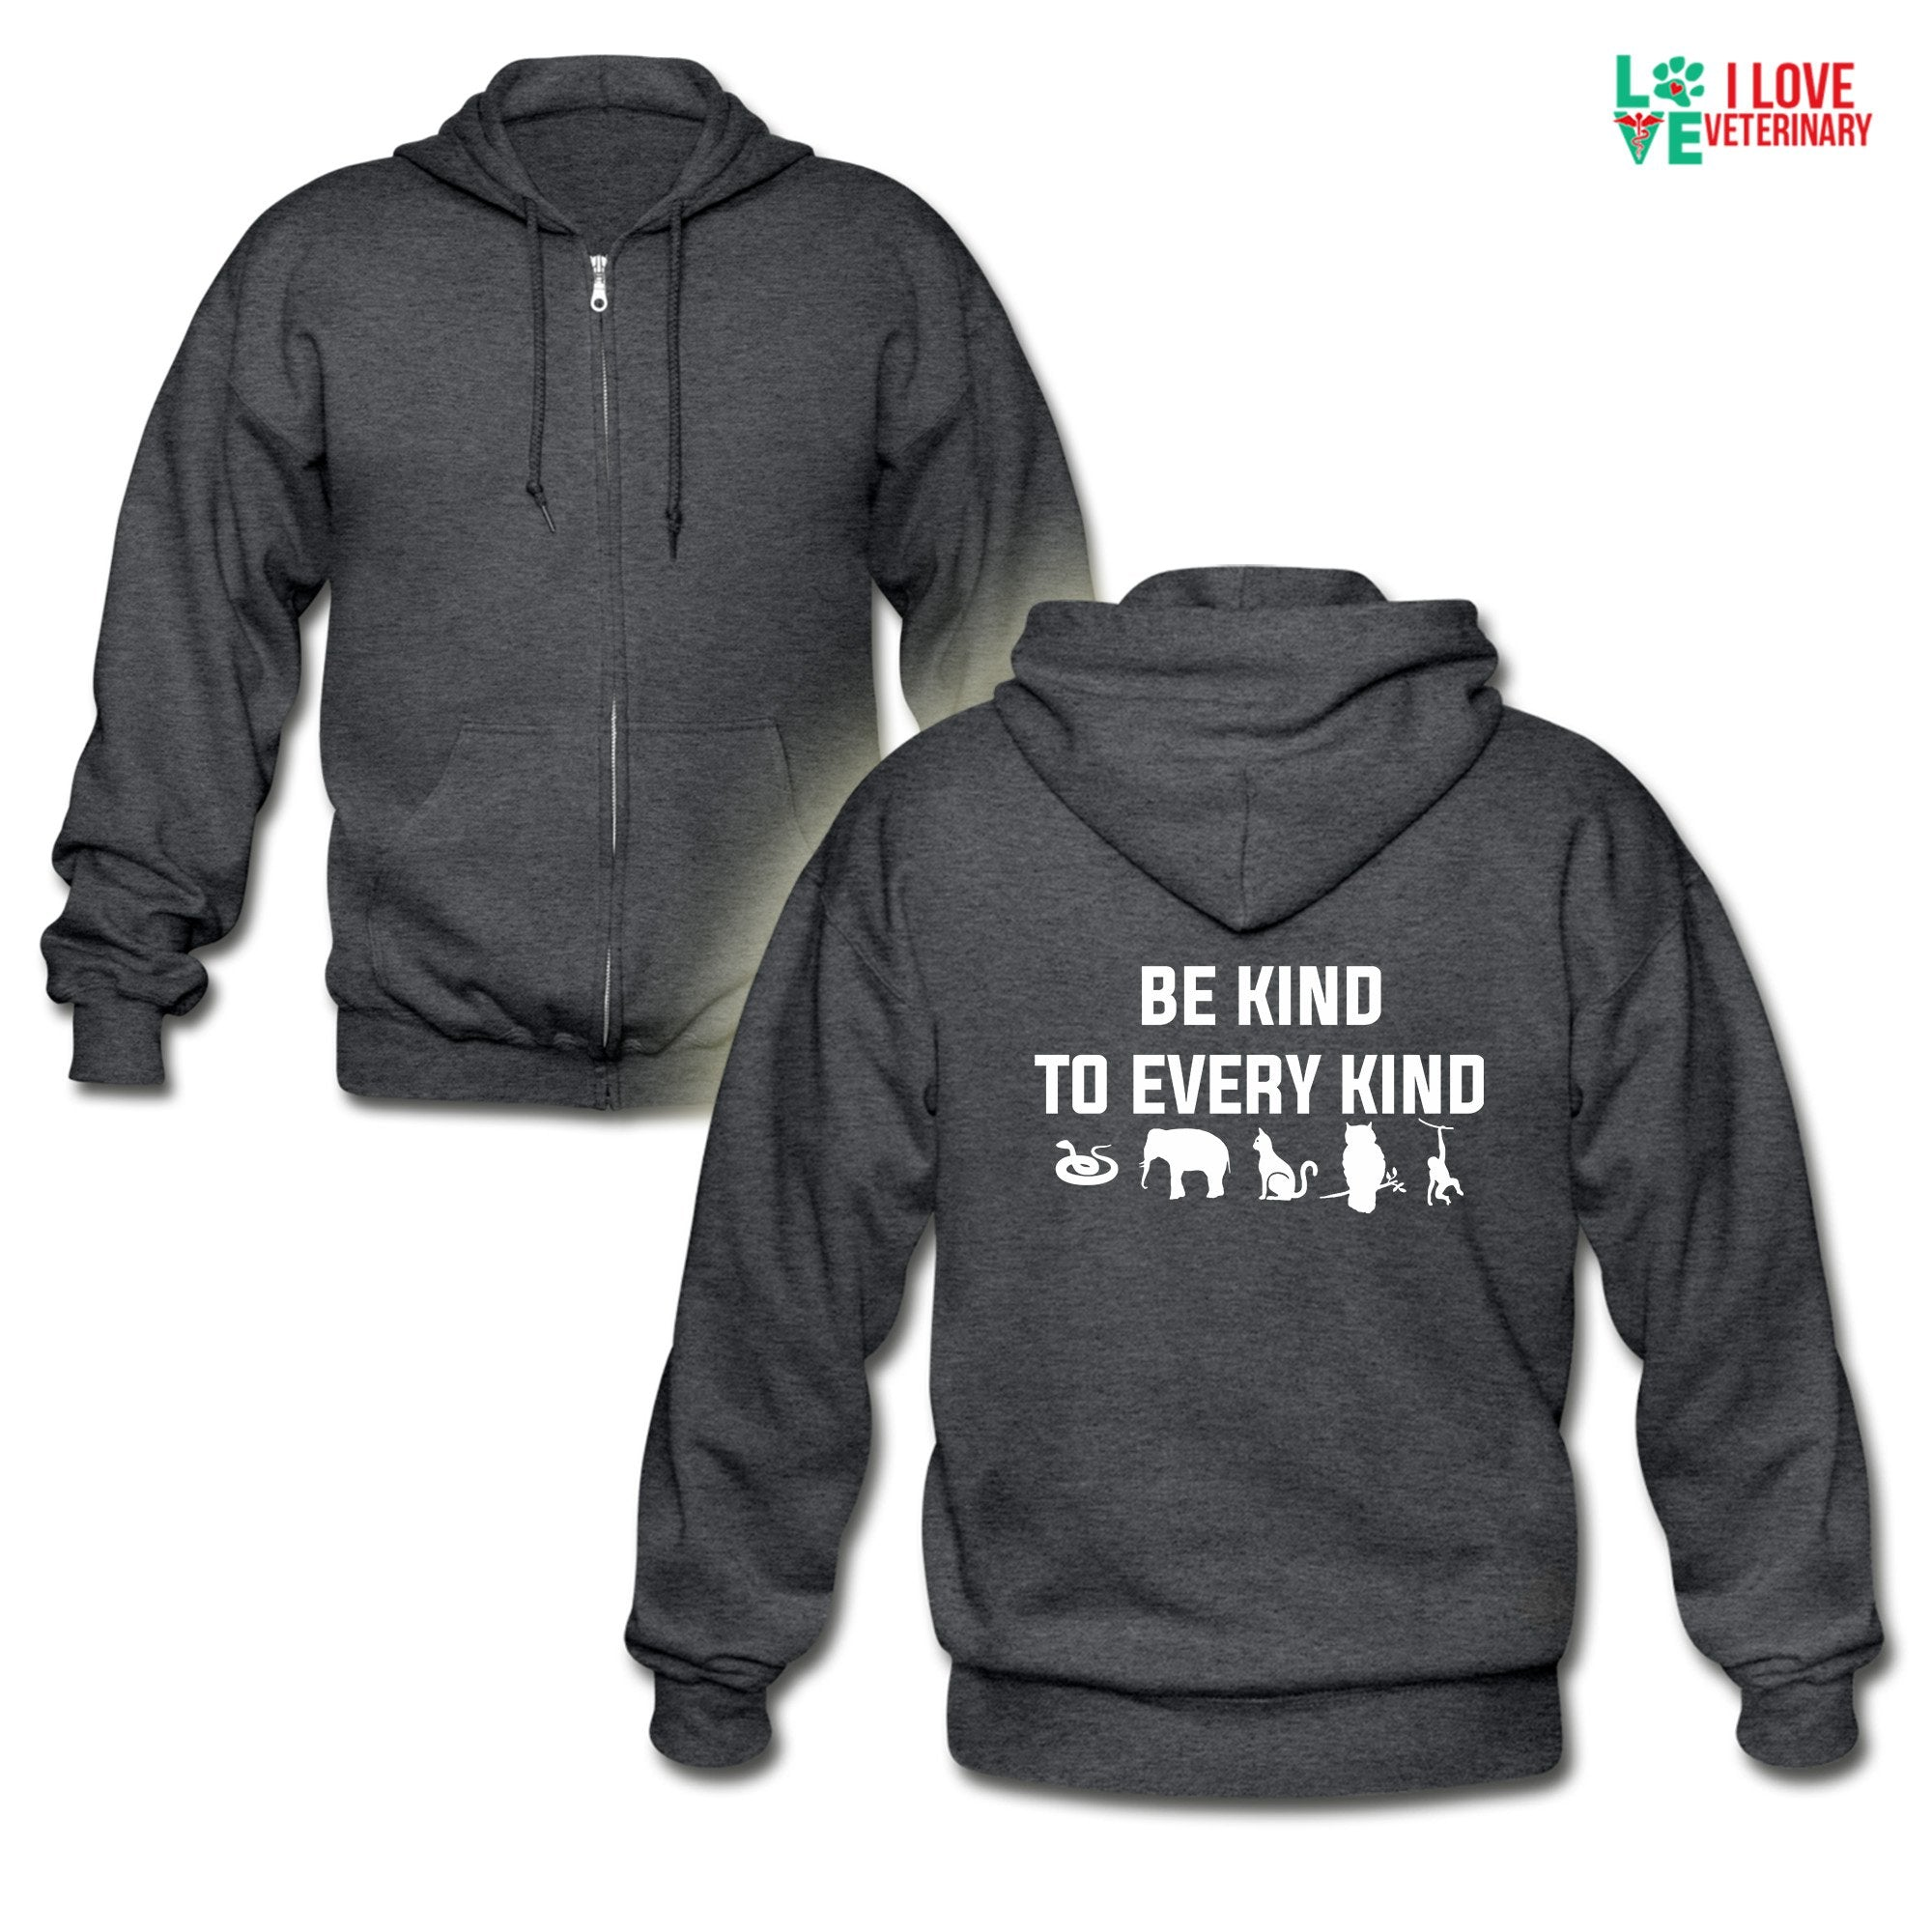 Veterinary - Be kind to every kind Unisex Zip Hoodie-Gildan Heavy Blend Adult Zip Hoodie-I love Veterinary